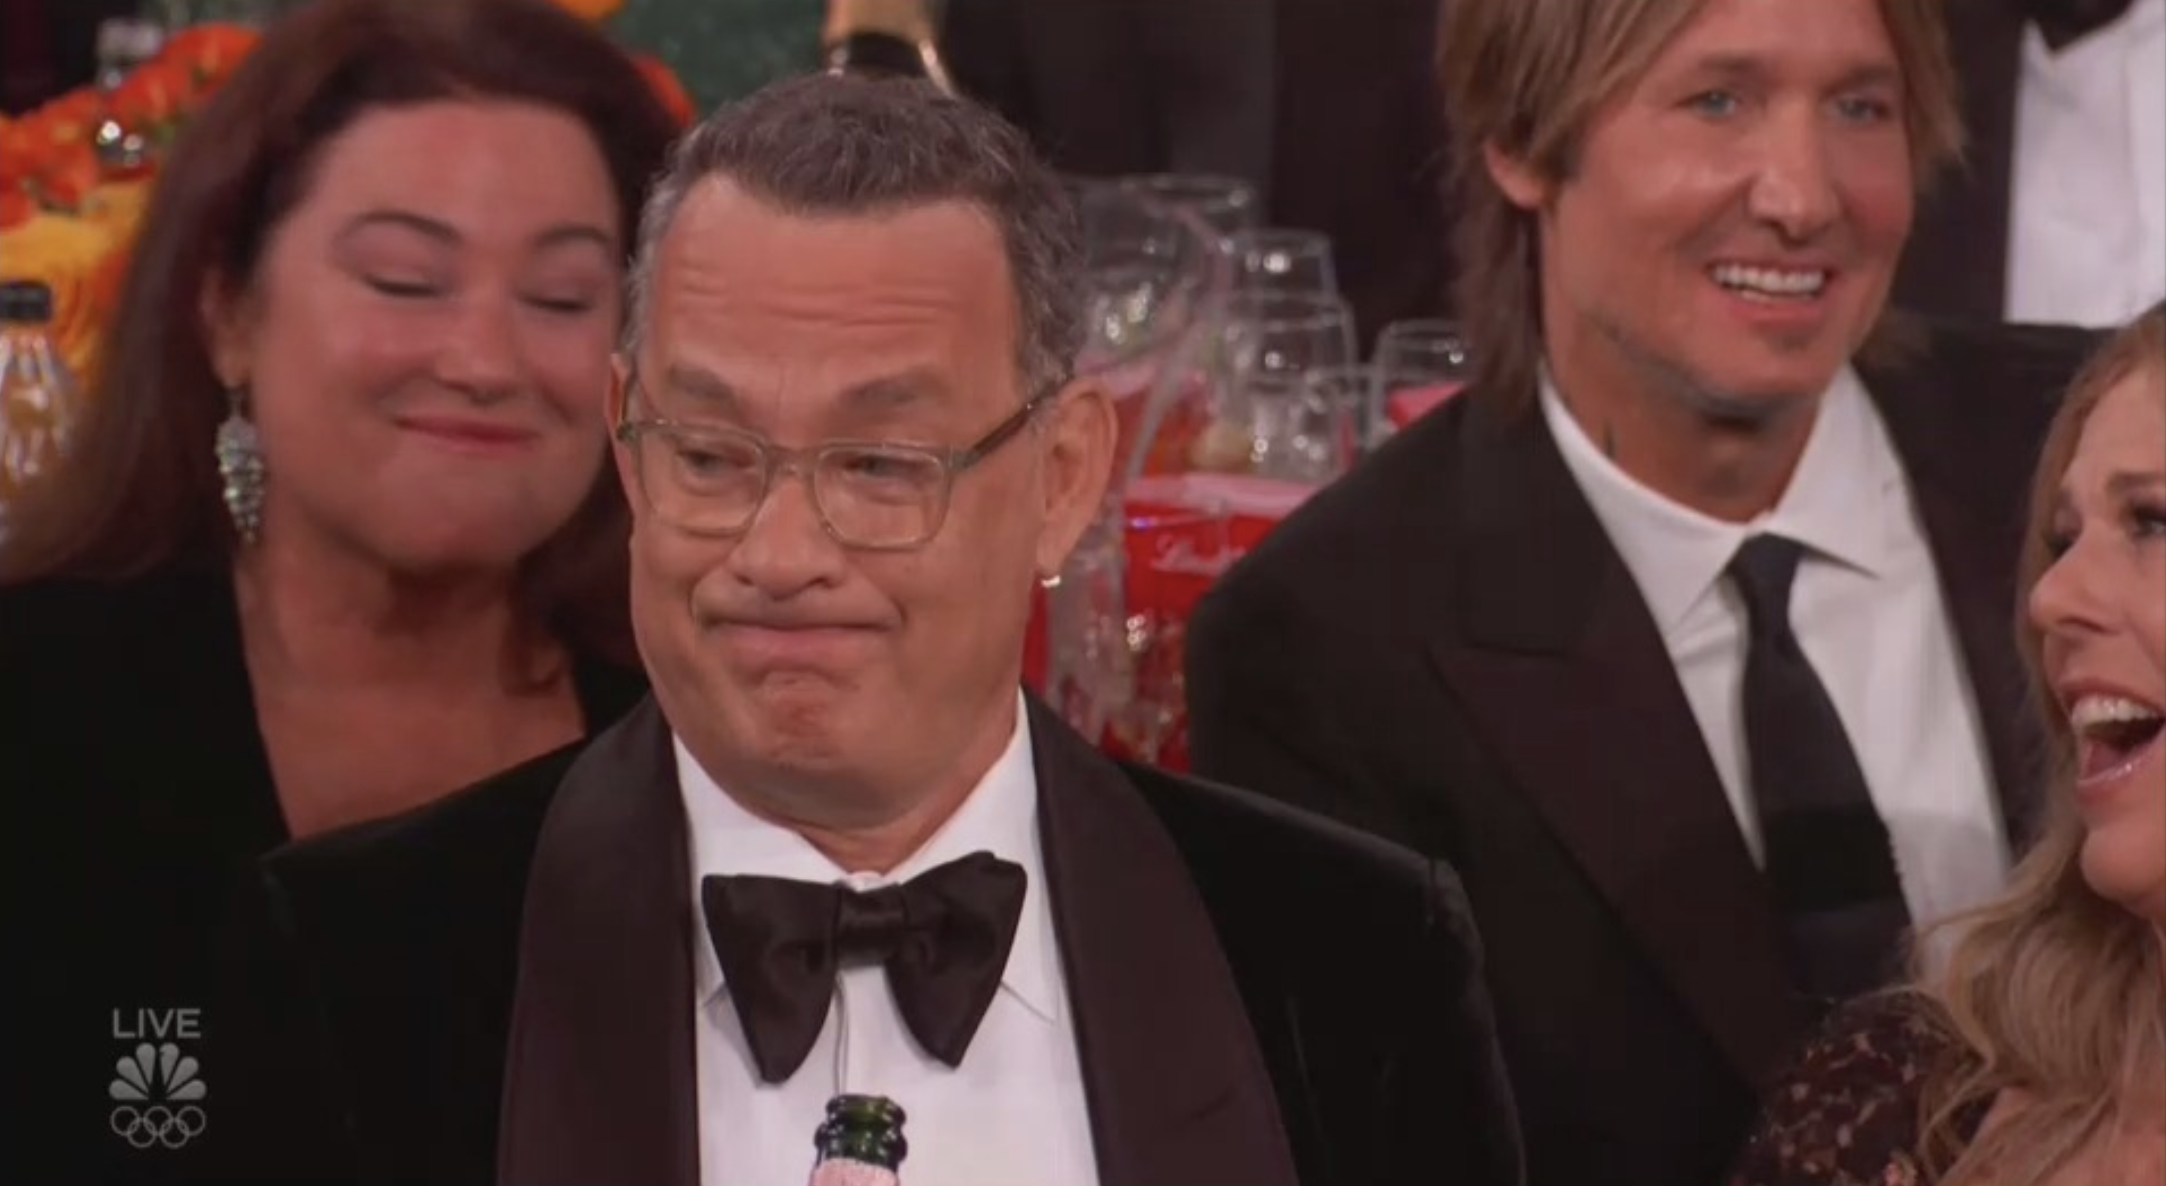 Tom Hanks' hilarious facial expression is the real winner of the Golden Globes